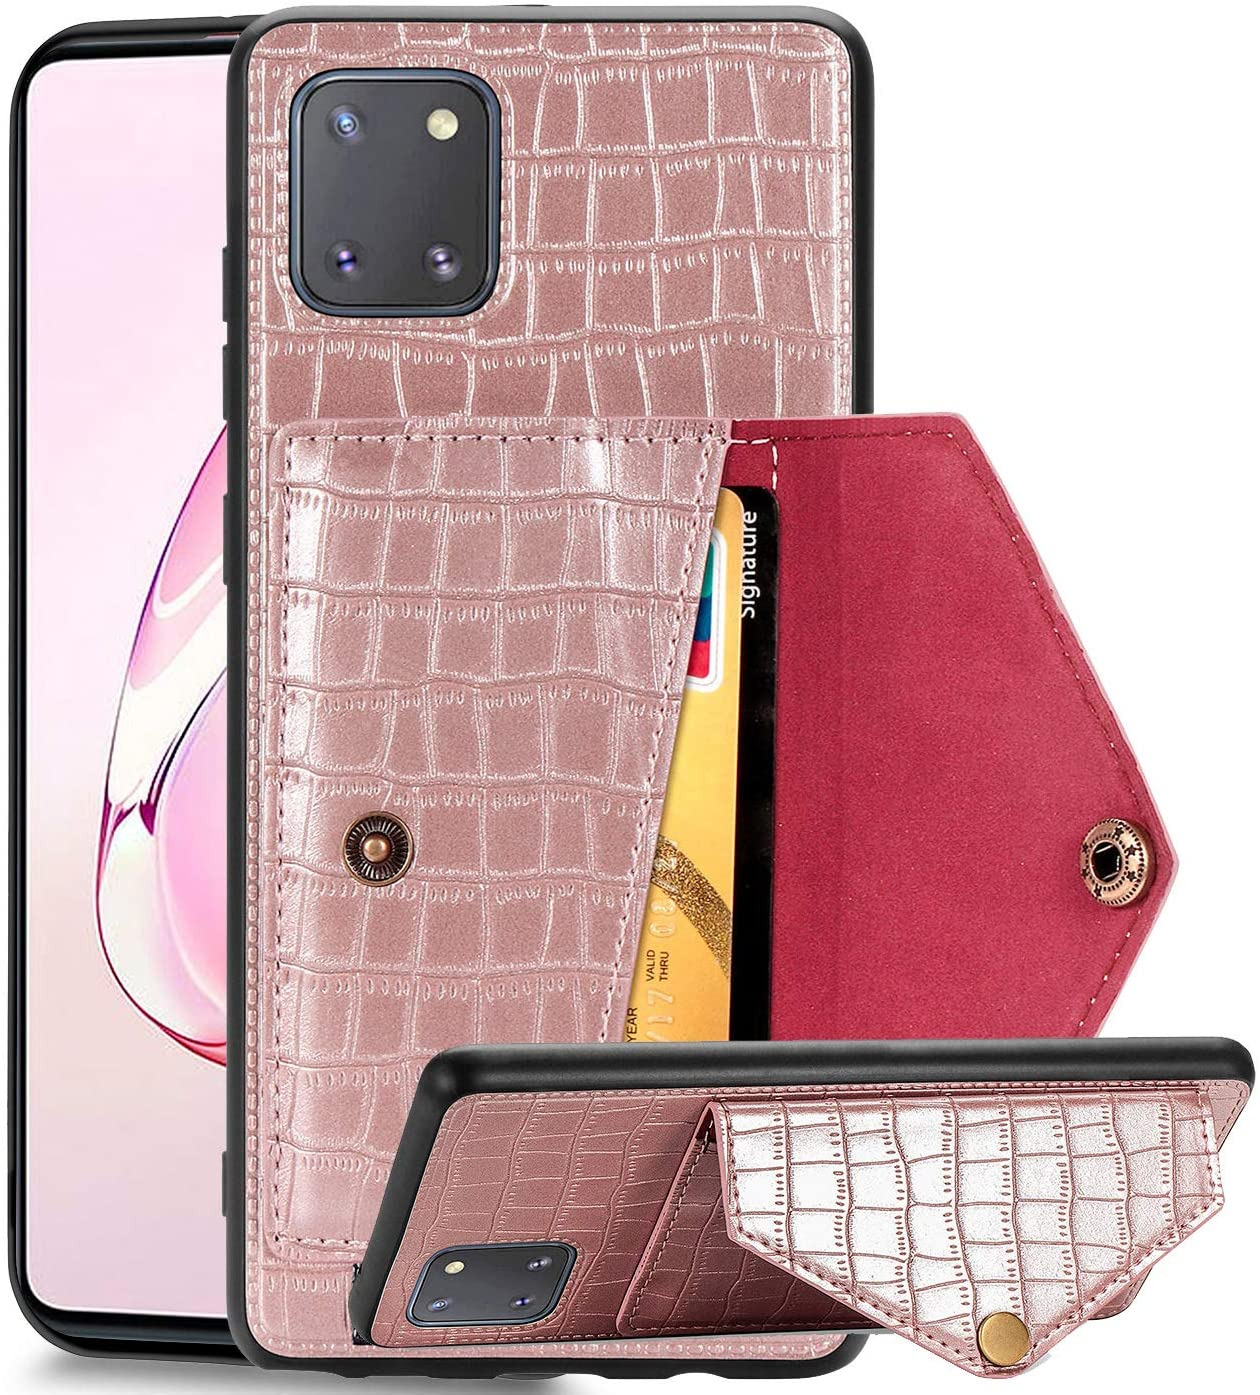 Samsung Galaxy Note 10 Lite Wallet Case with Card Holder,ZYZX Galaxy A81 Crocodile Pattern Envelope Case (Built-in Magnetic Car Mount Armor) Phone Cover for Samsung Galaxy Note 10 Lite Rose Red-EY